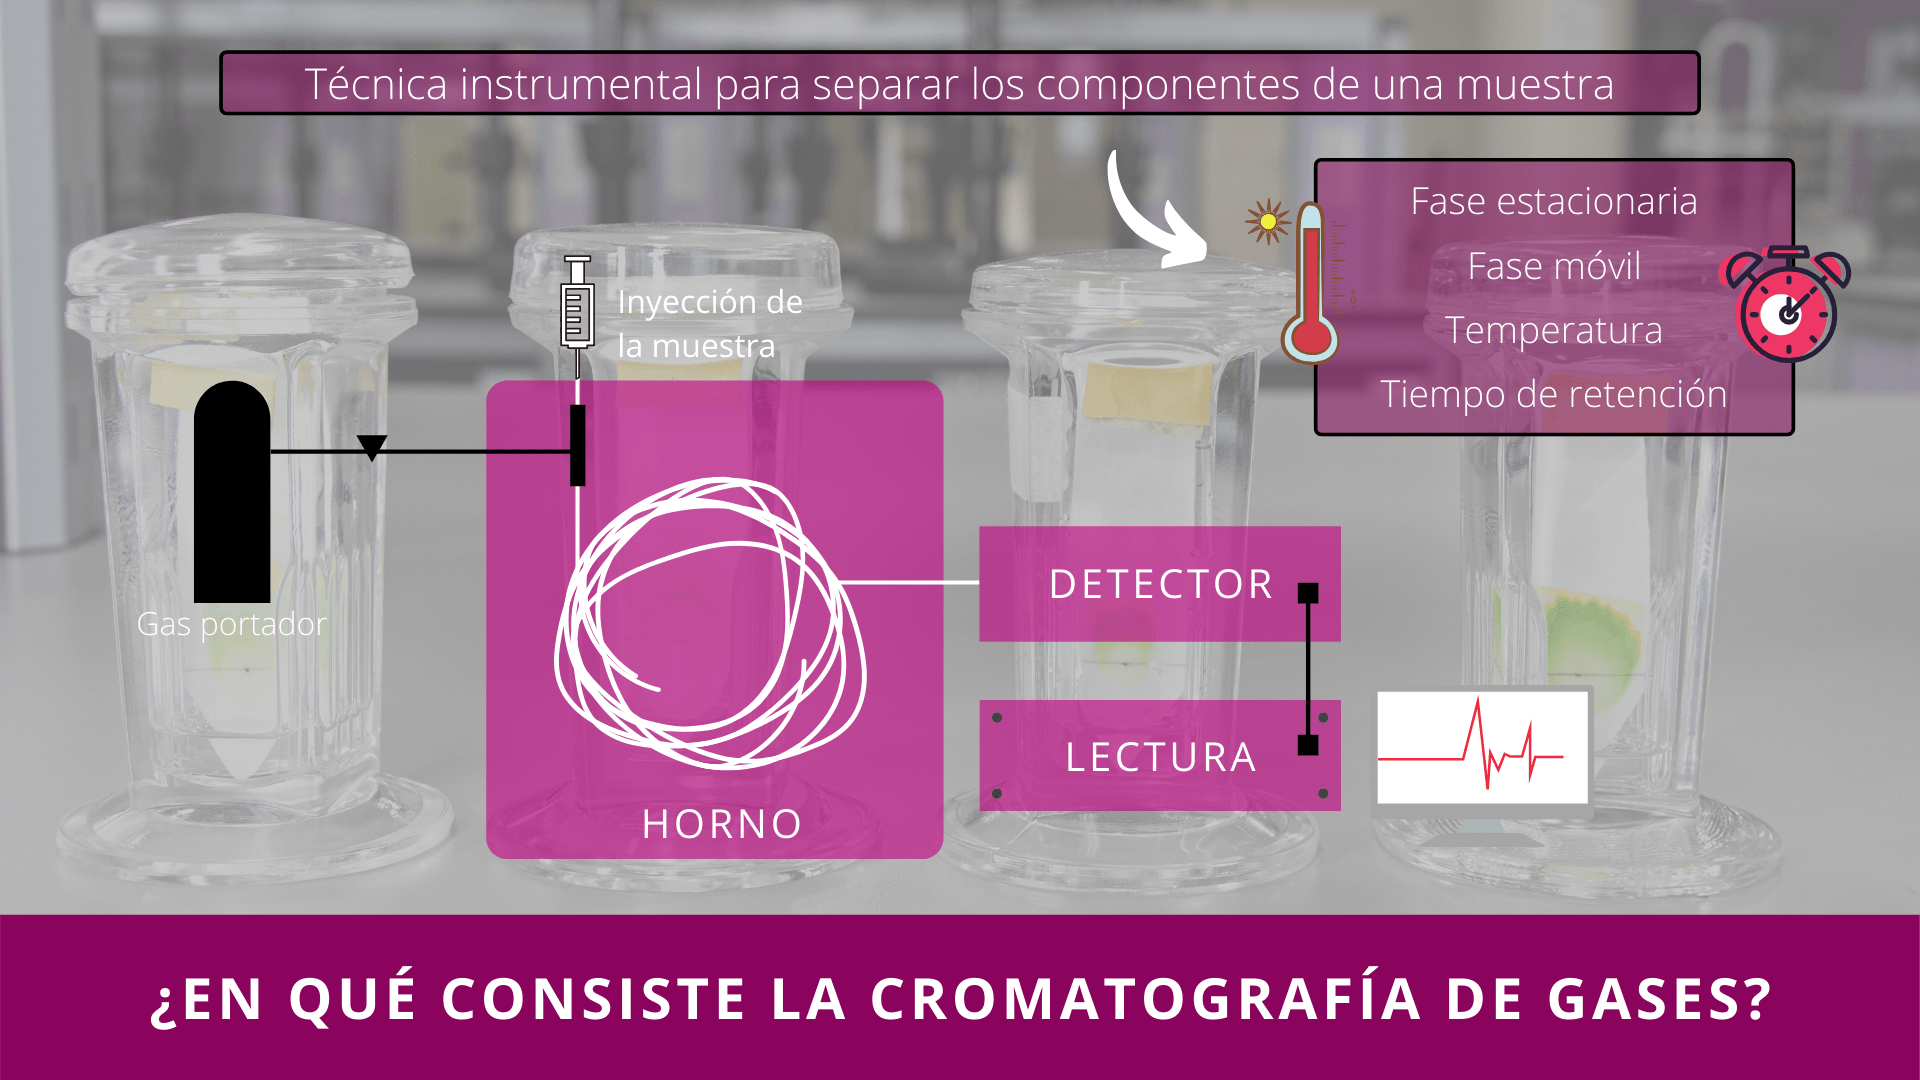 Parámetos analíticos aceites oliva 5